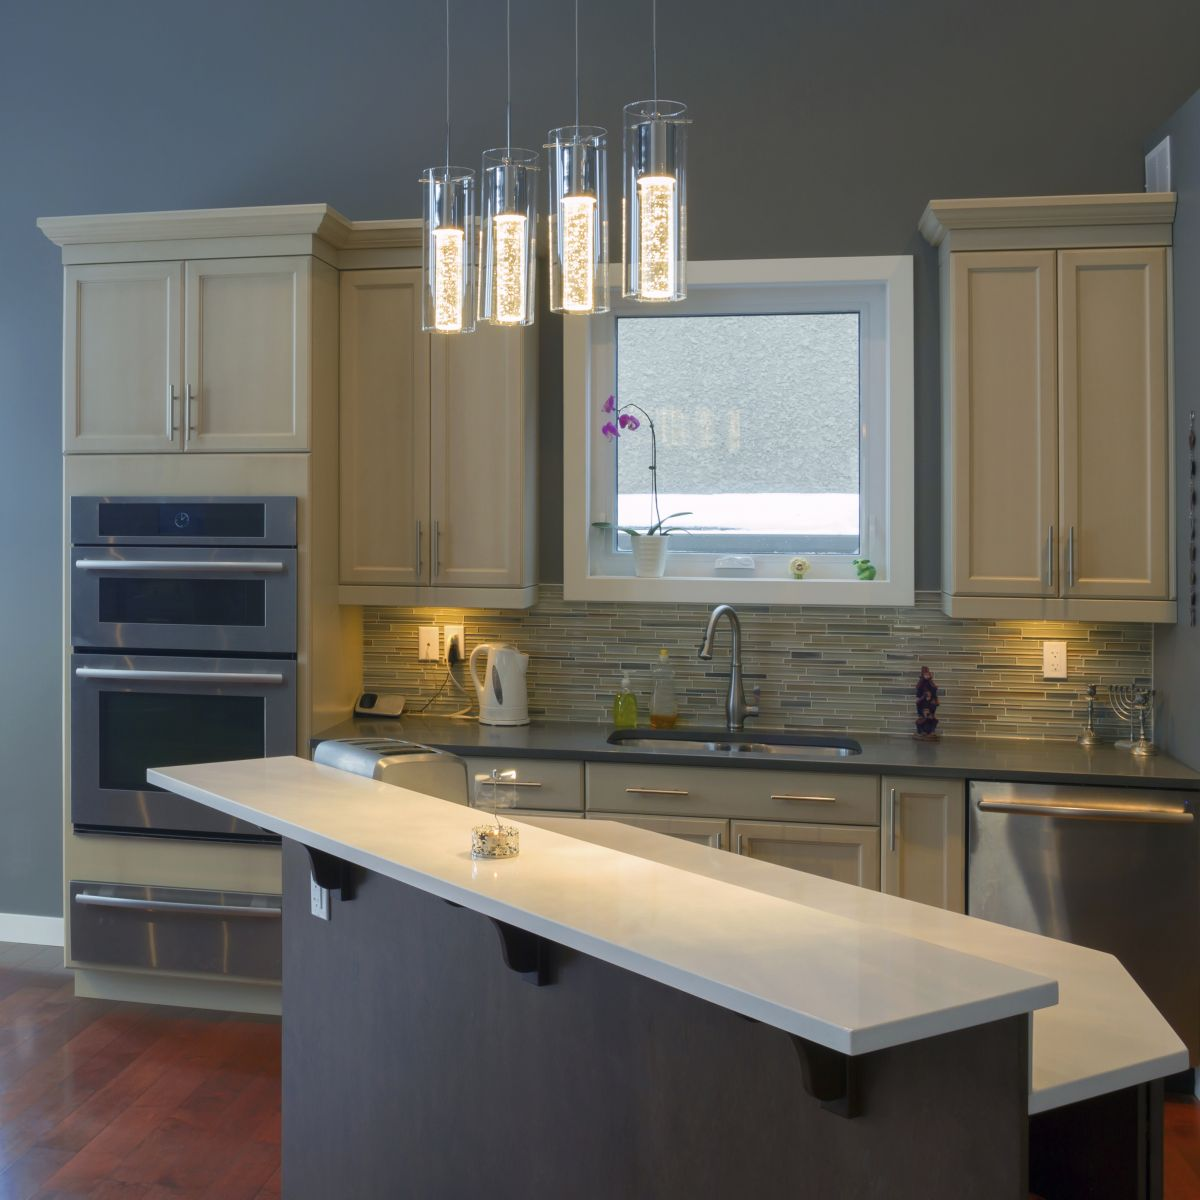 Average Cost Of Kitchen Cabinet Refacing: How Much Does Kitchen Cabinet Refacing Cost?